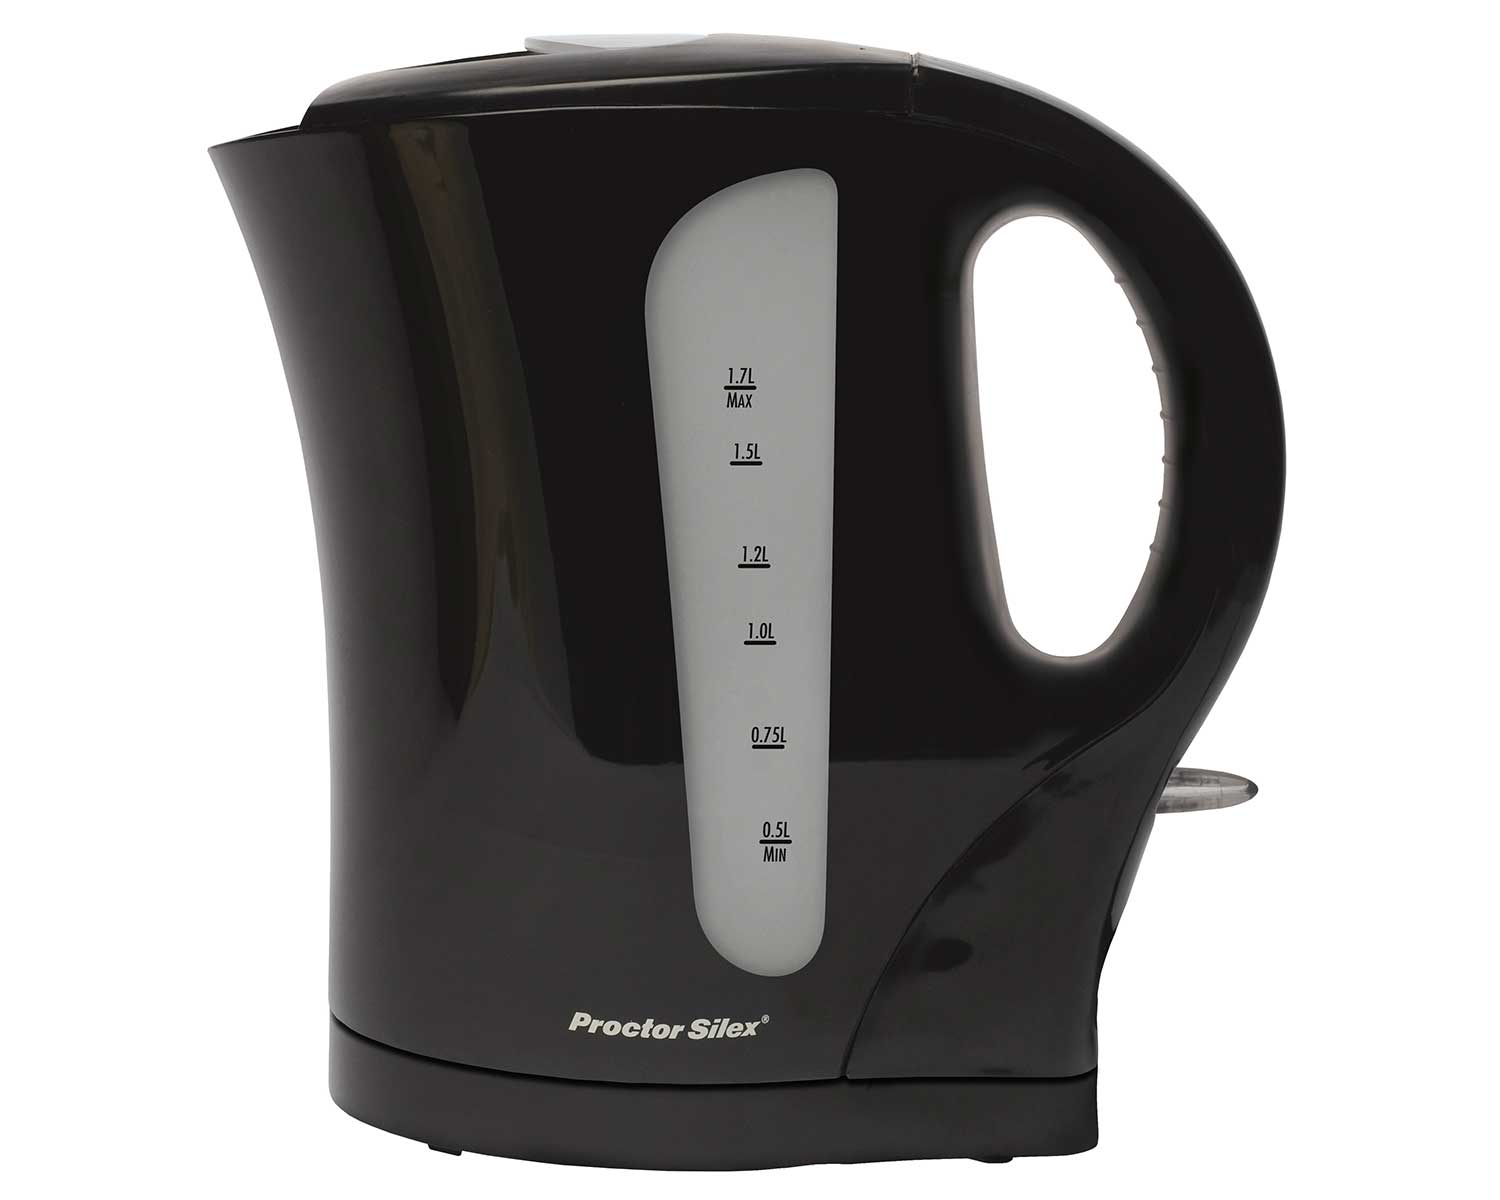 1.7 Litre Cordless Electric Kettle (black)- K4097 Small Size